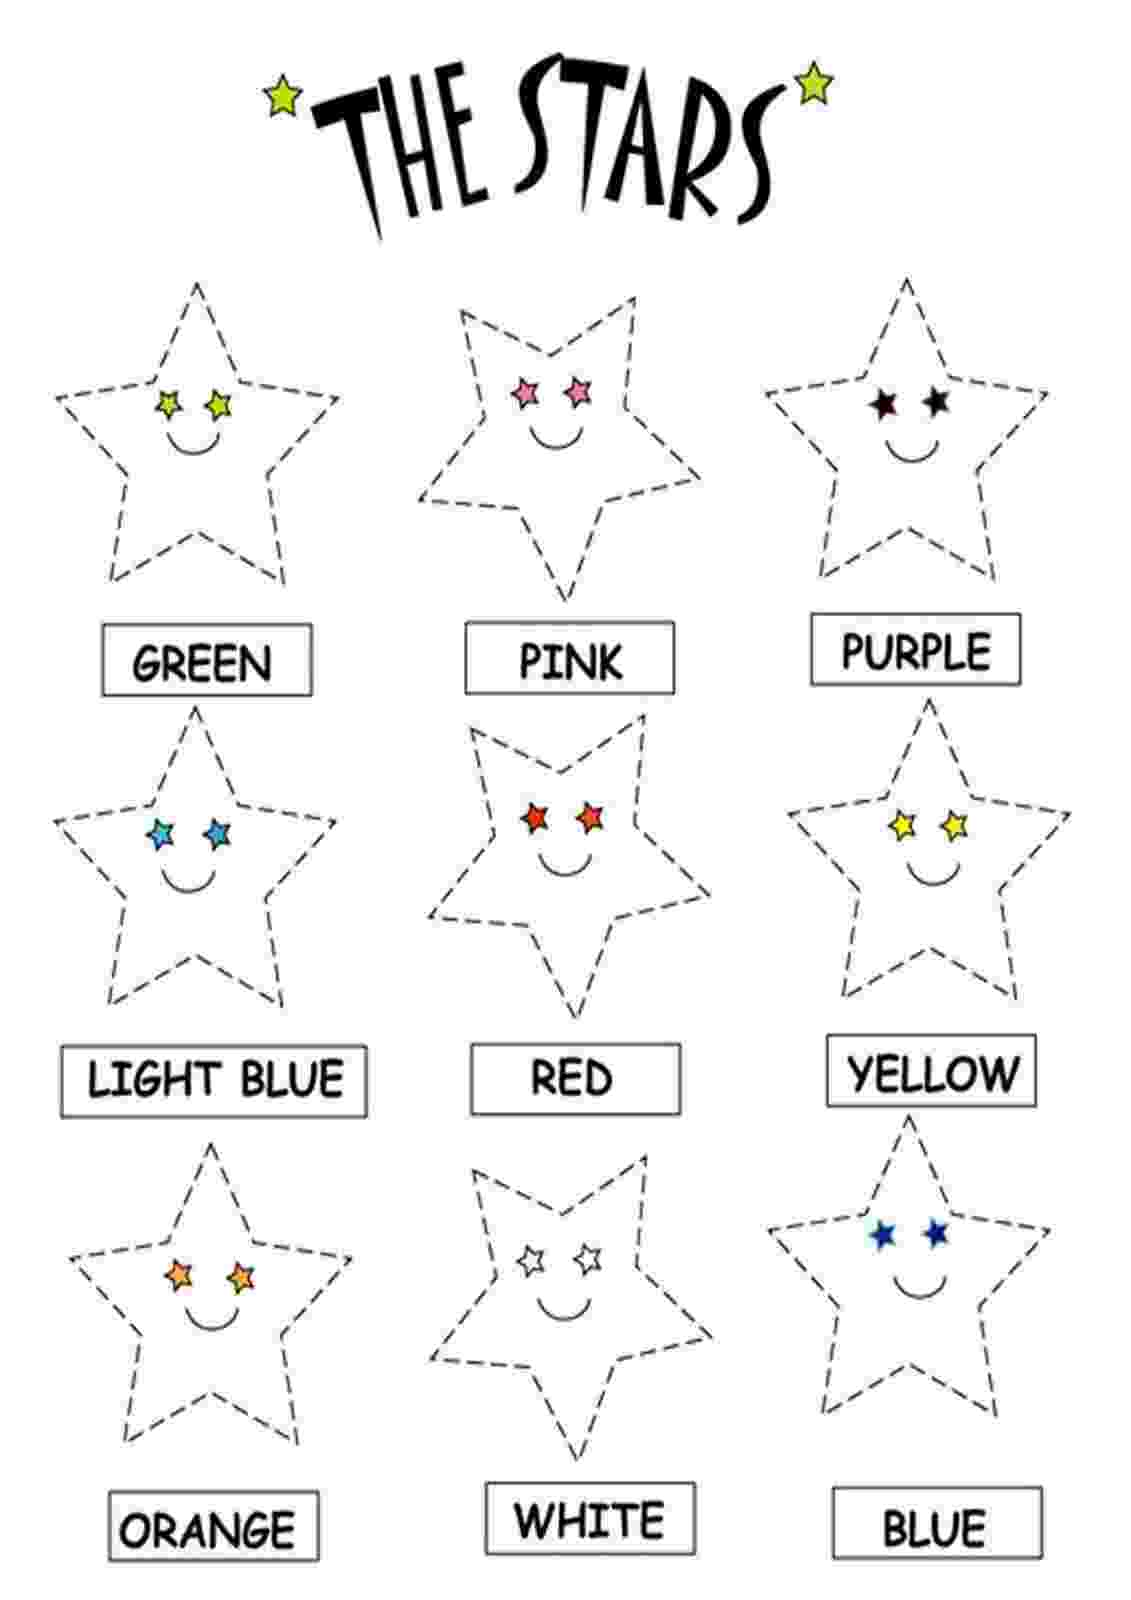 free coloring pages grade 1 color the stars worksheets download free printable and coloring pages 1 grade free